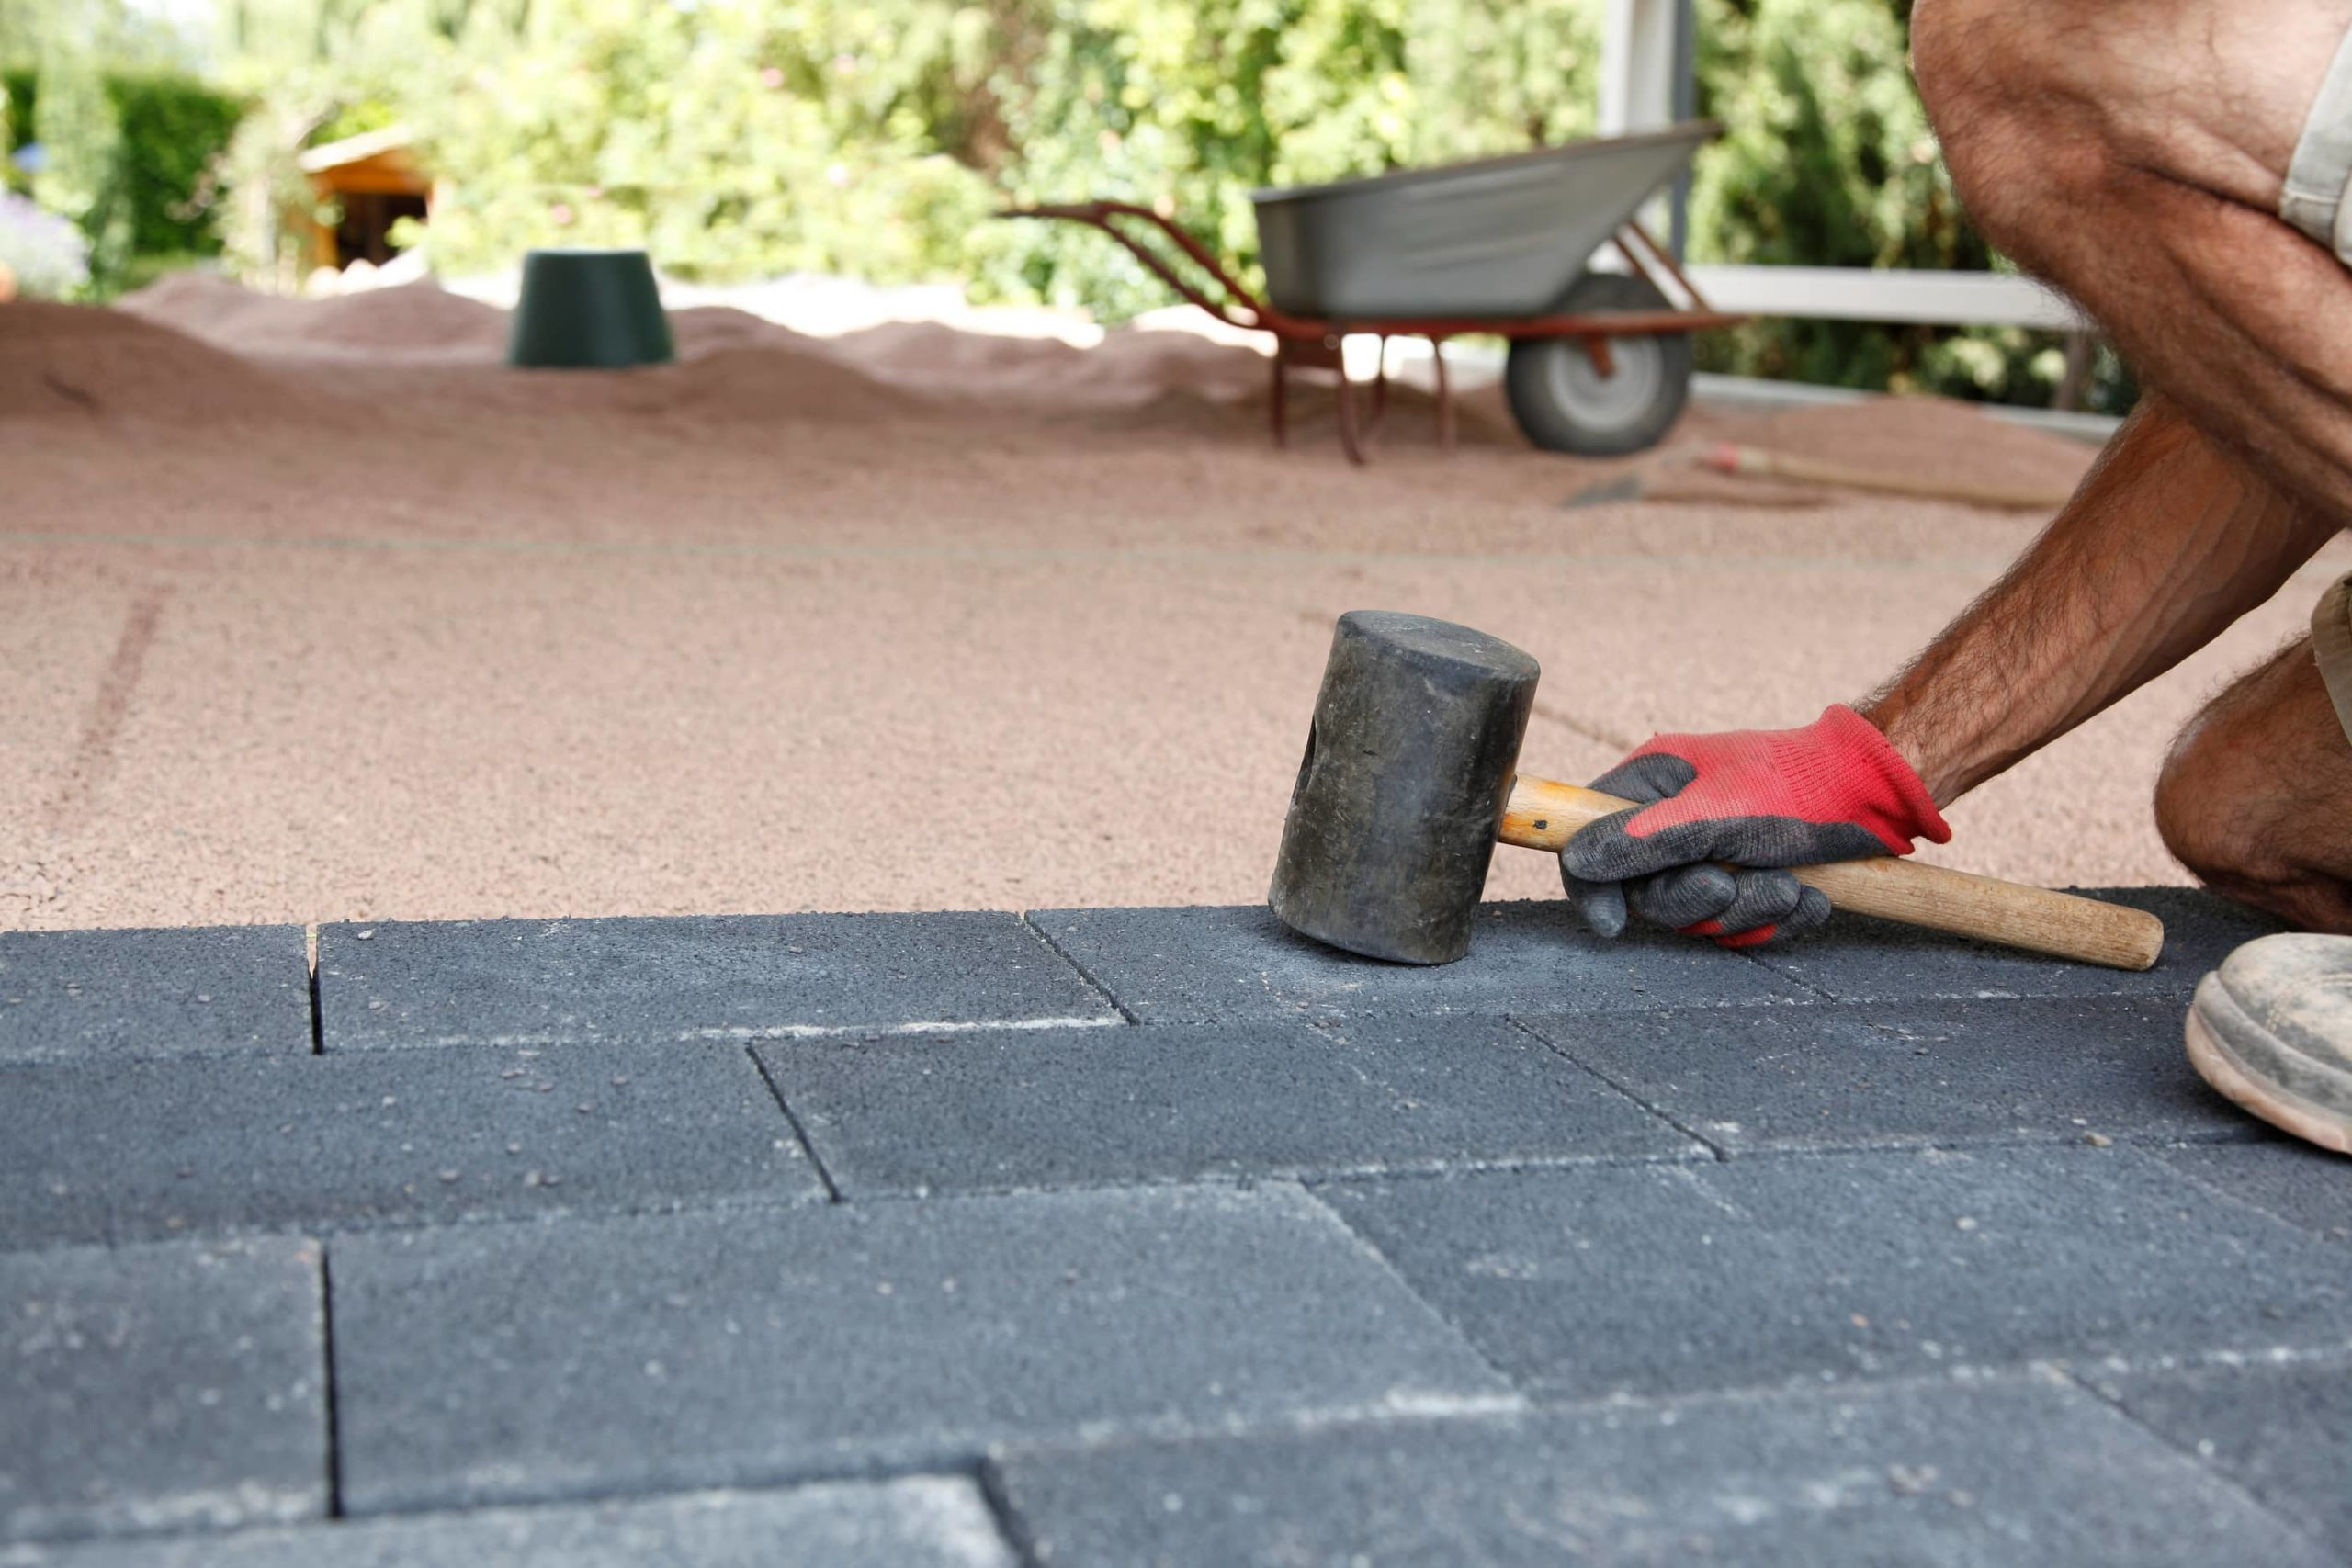 This is an image of a contractor laying concrete paving bricks.